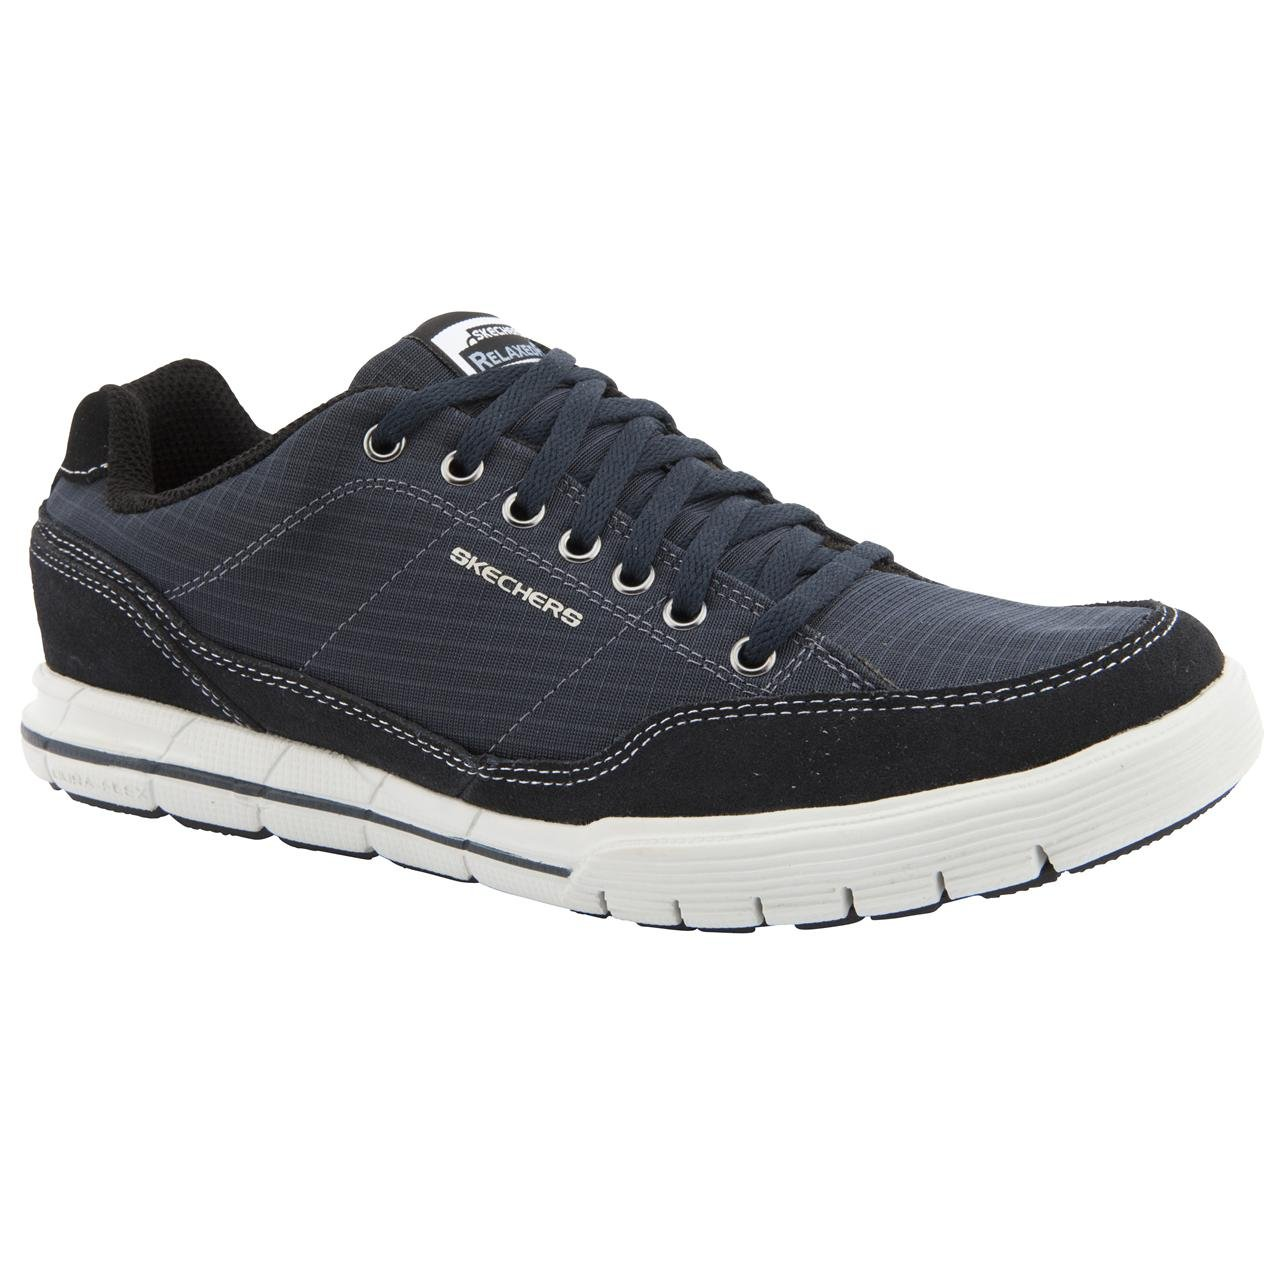 Skechers Mens Arcade Circulate King Navy Leisure Trainers